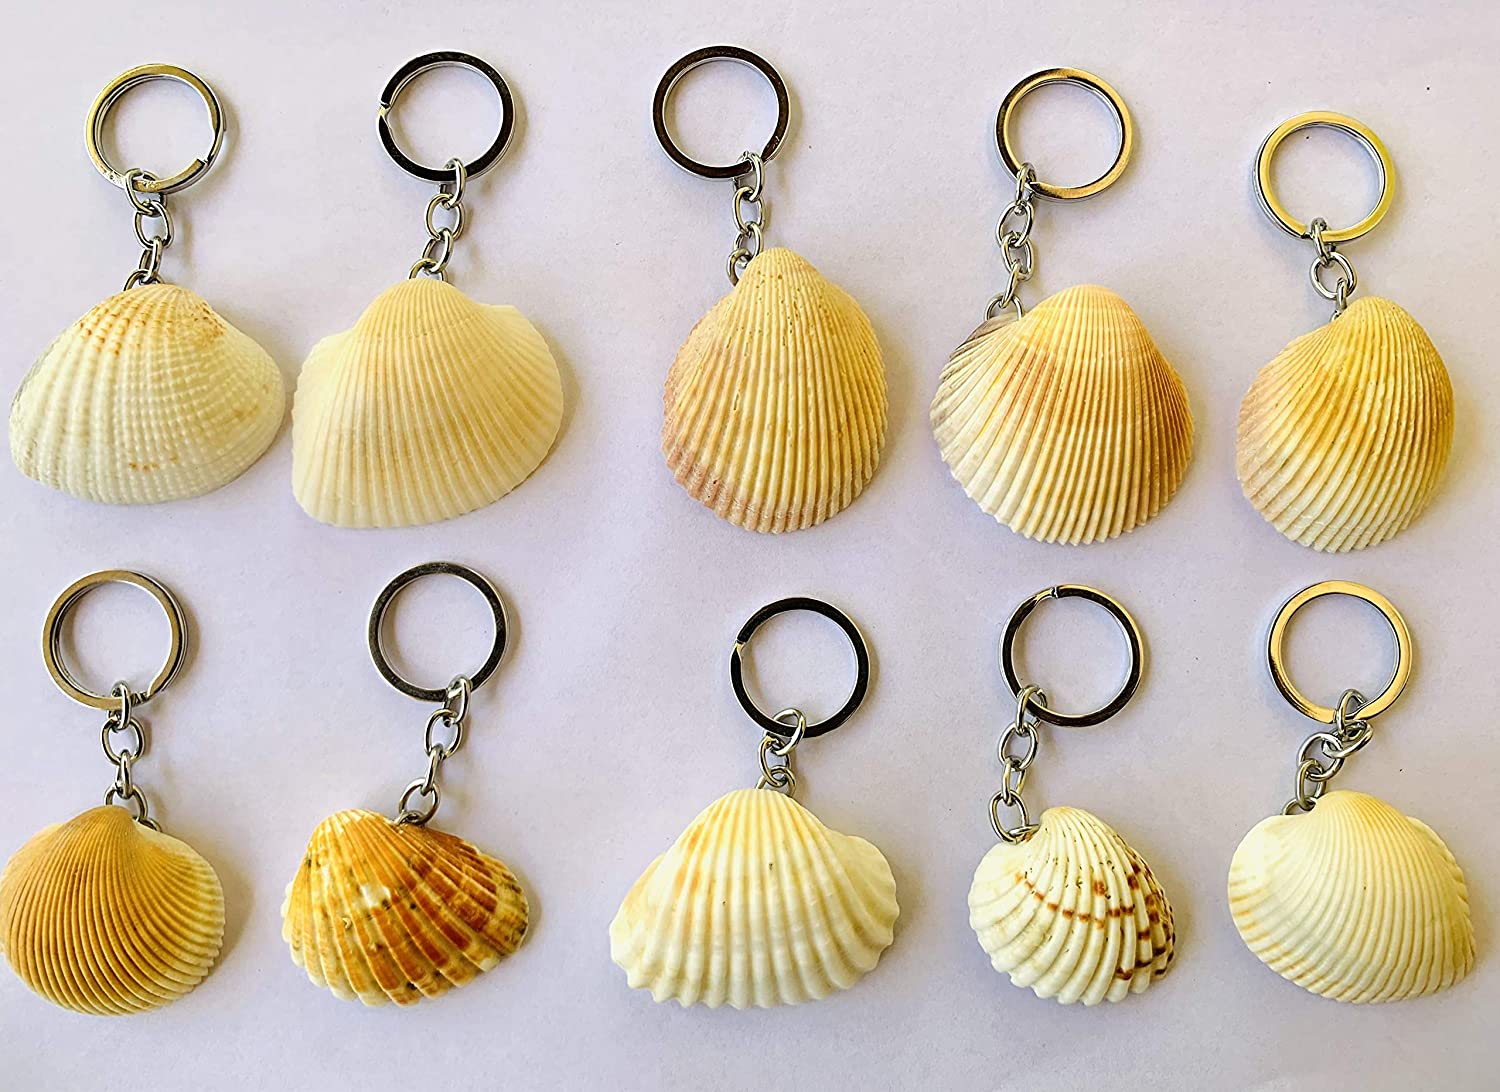 2 in 1 pack Natural Seashell Keychains, Key tags, keyrings, Beautiful gift for kids best wishes for love